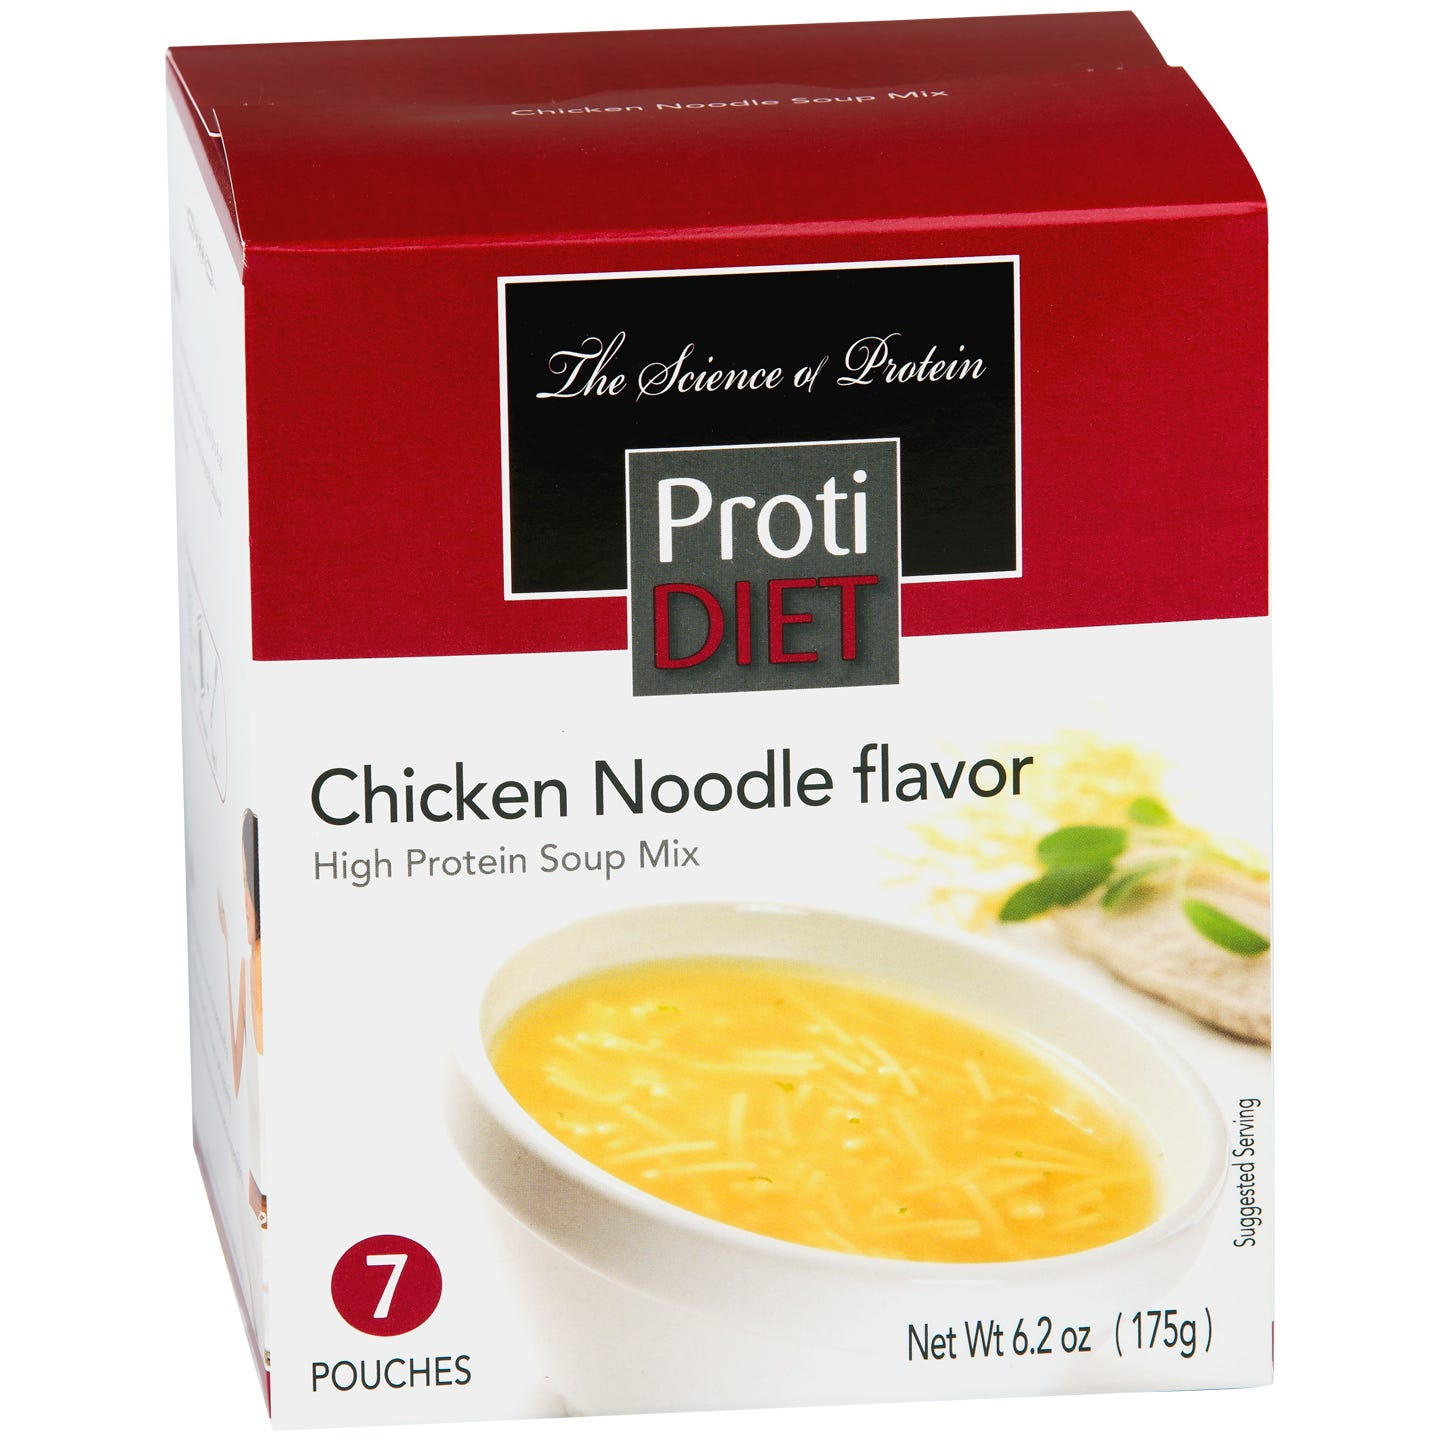 High Protein Soup Mix Chicken Noodle (7 ct) - ProtiDiet - Rapid Diet Weight Loss Products Shop